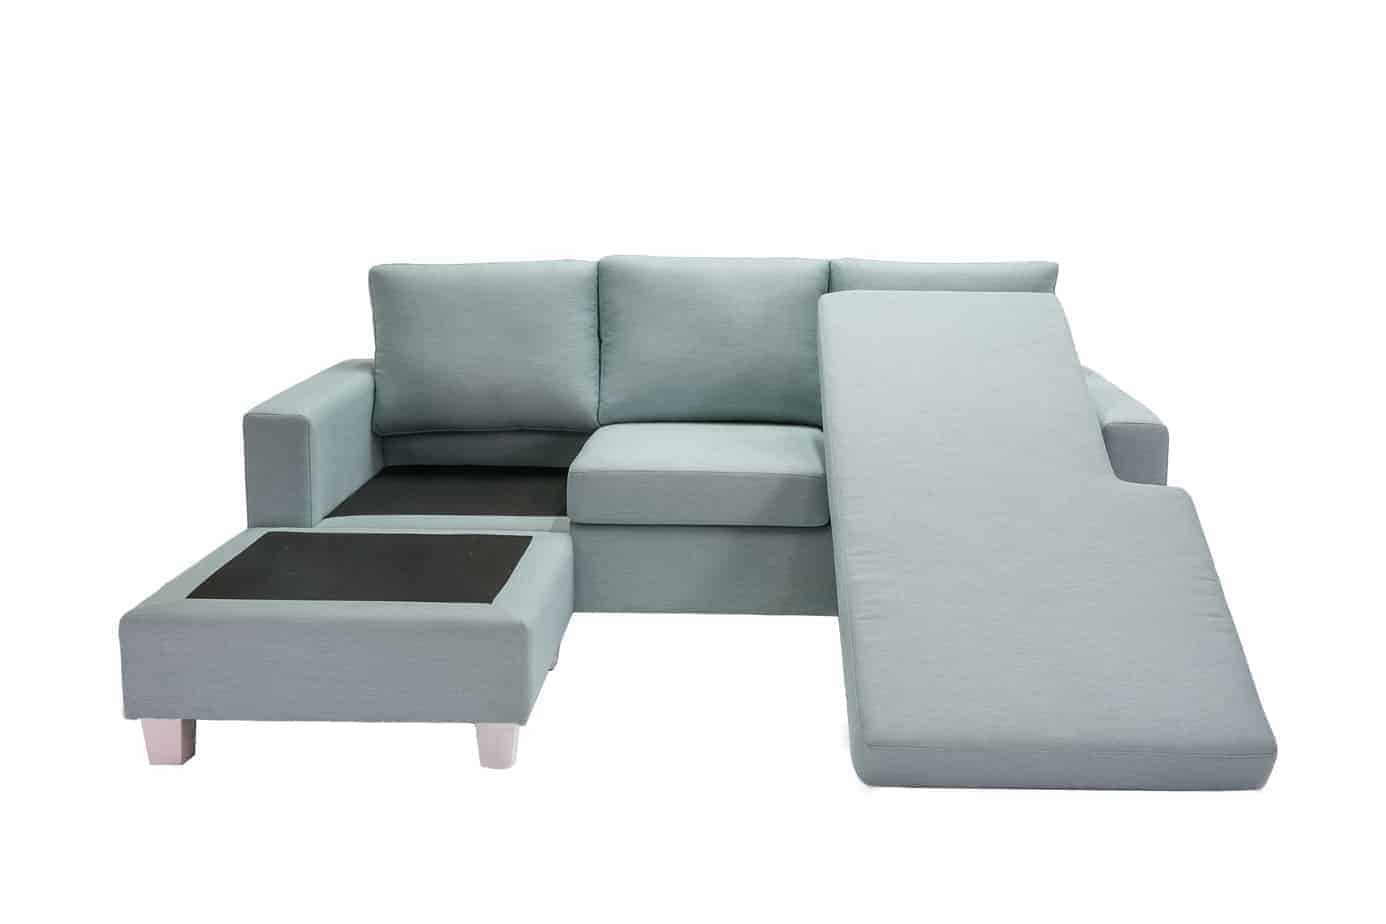 3 Seater Chaise Lounge 1 (3)